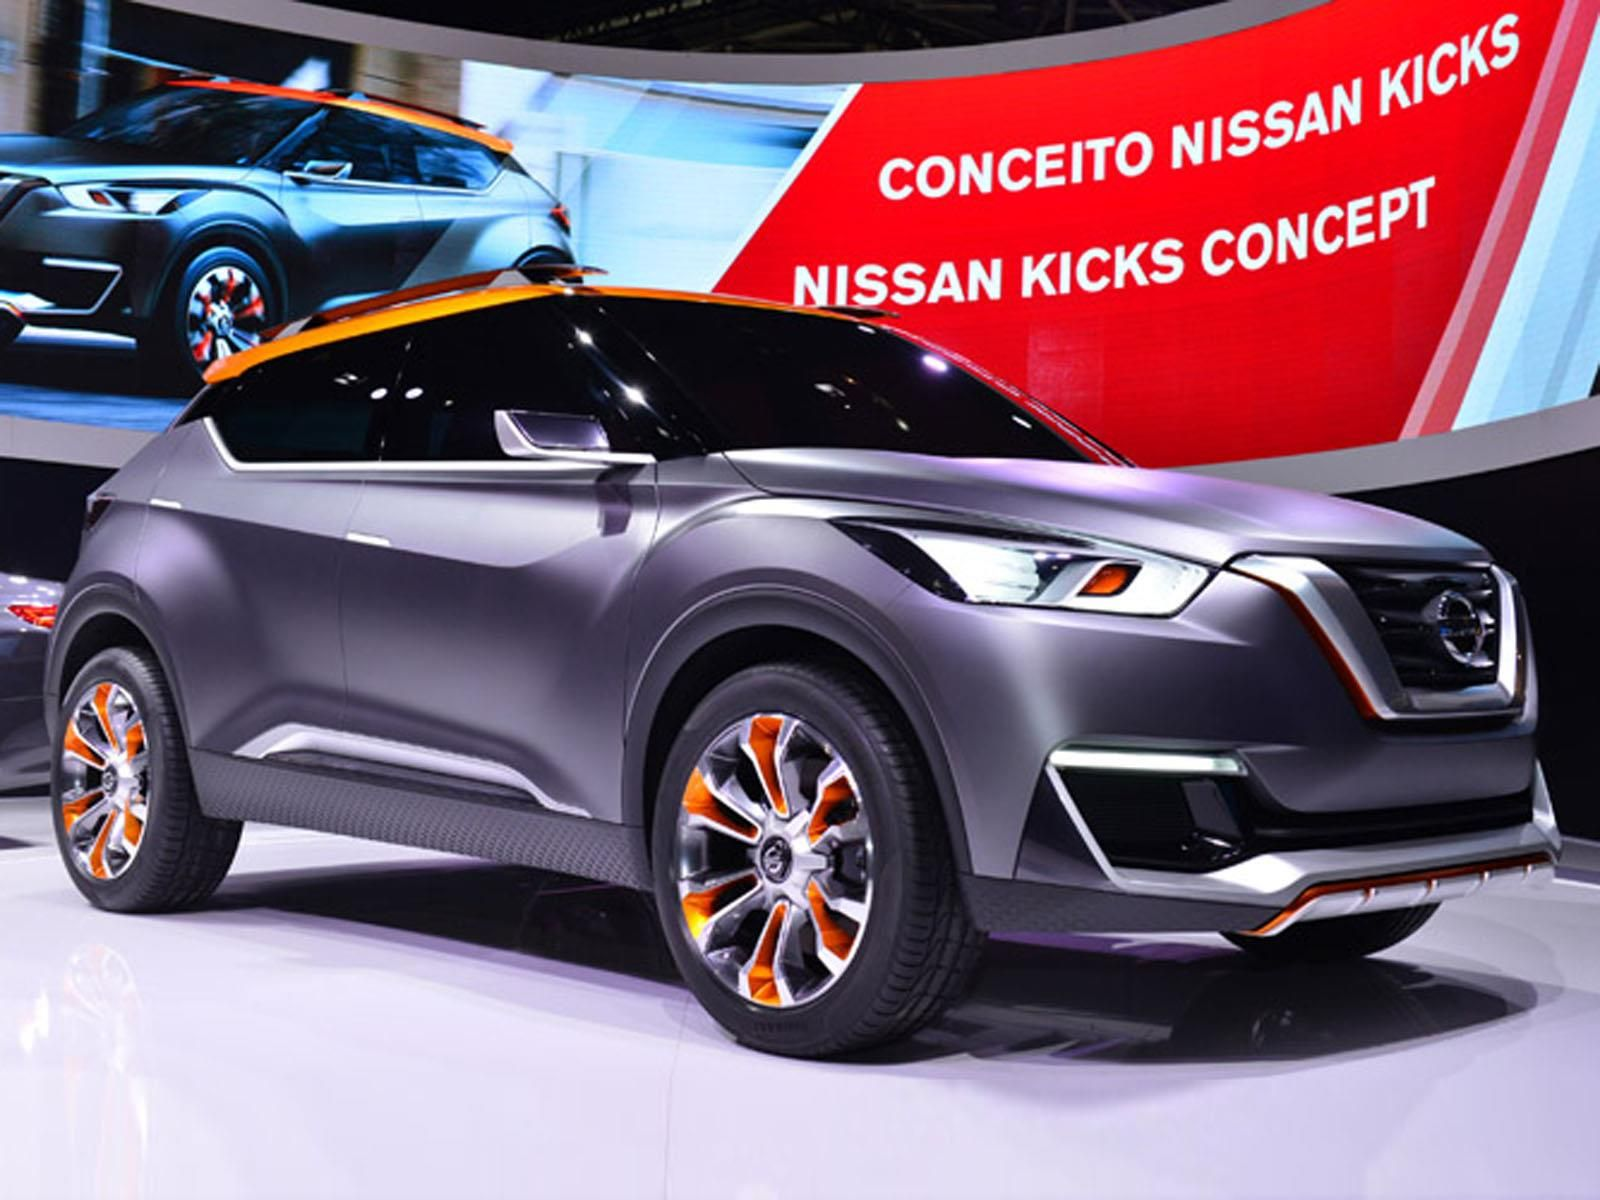 specs suv information nissan x trail pictures models wallpaper